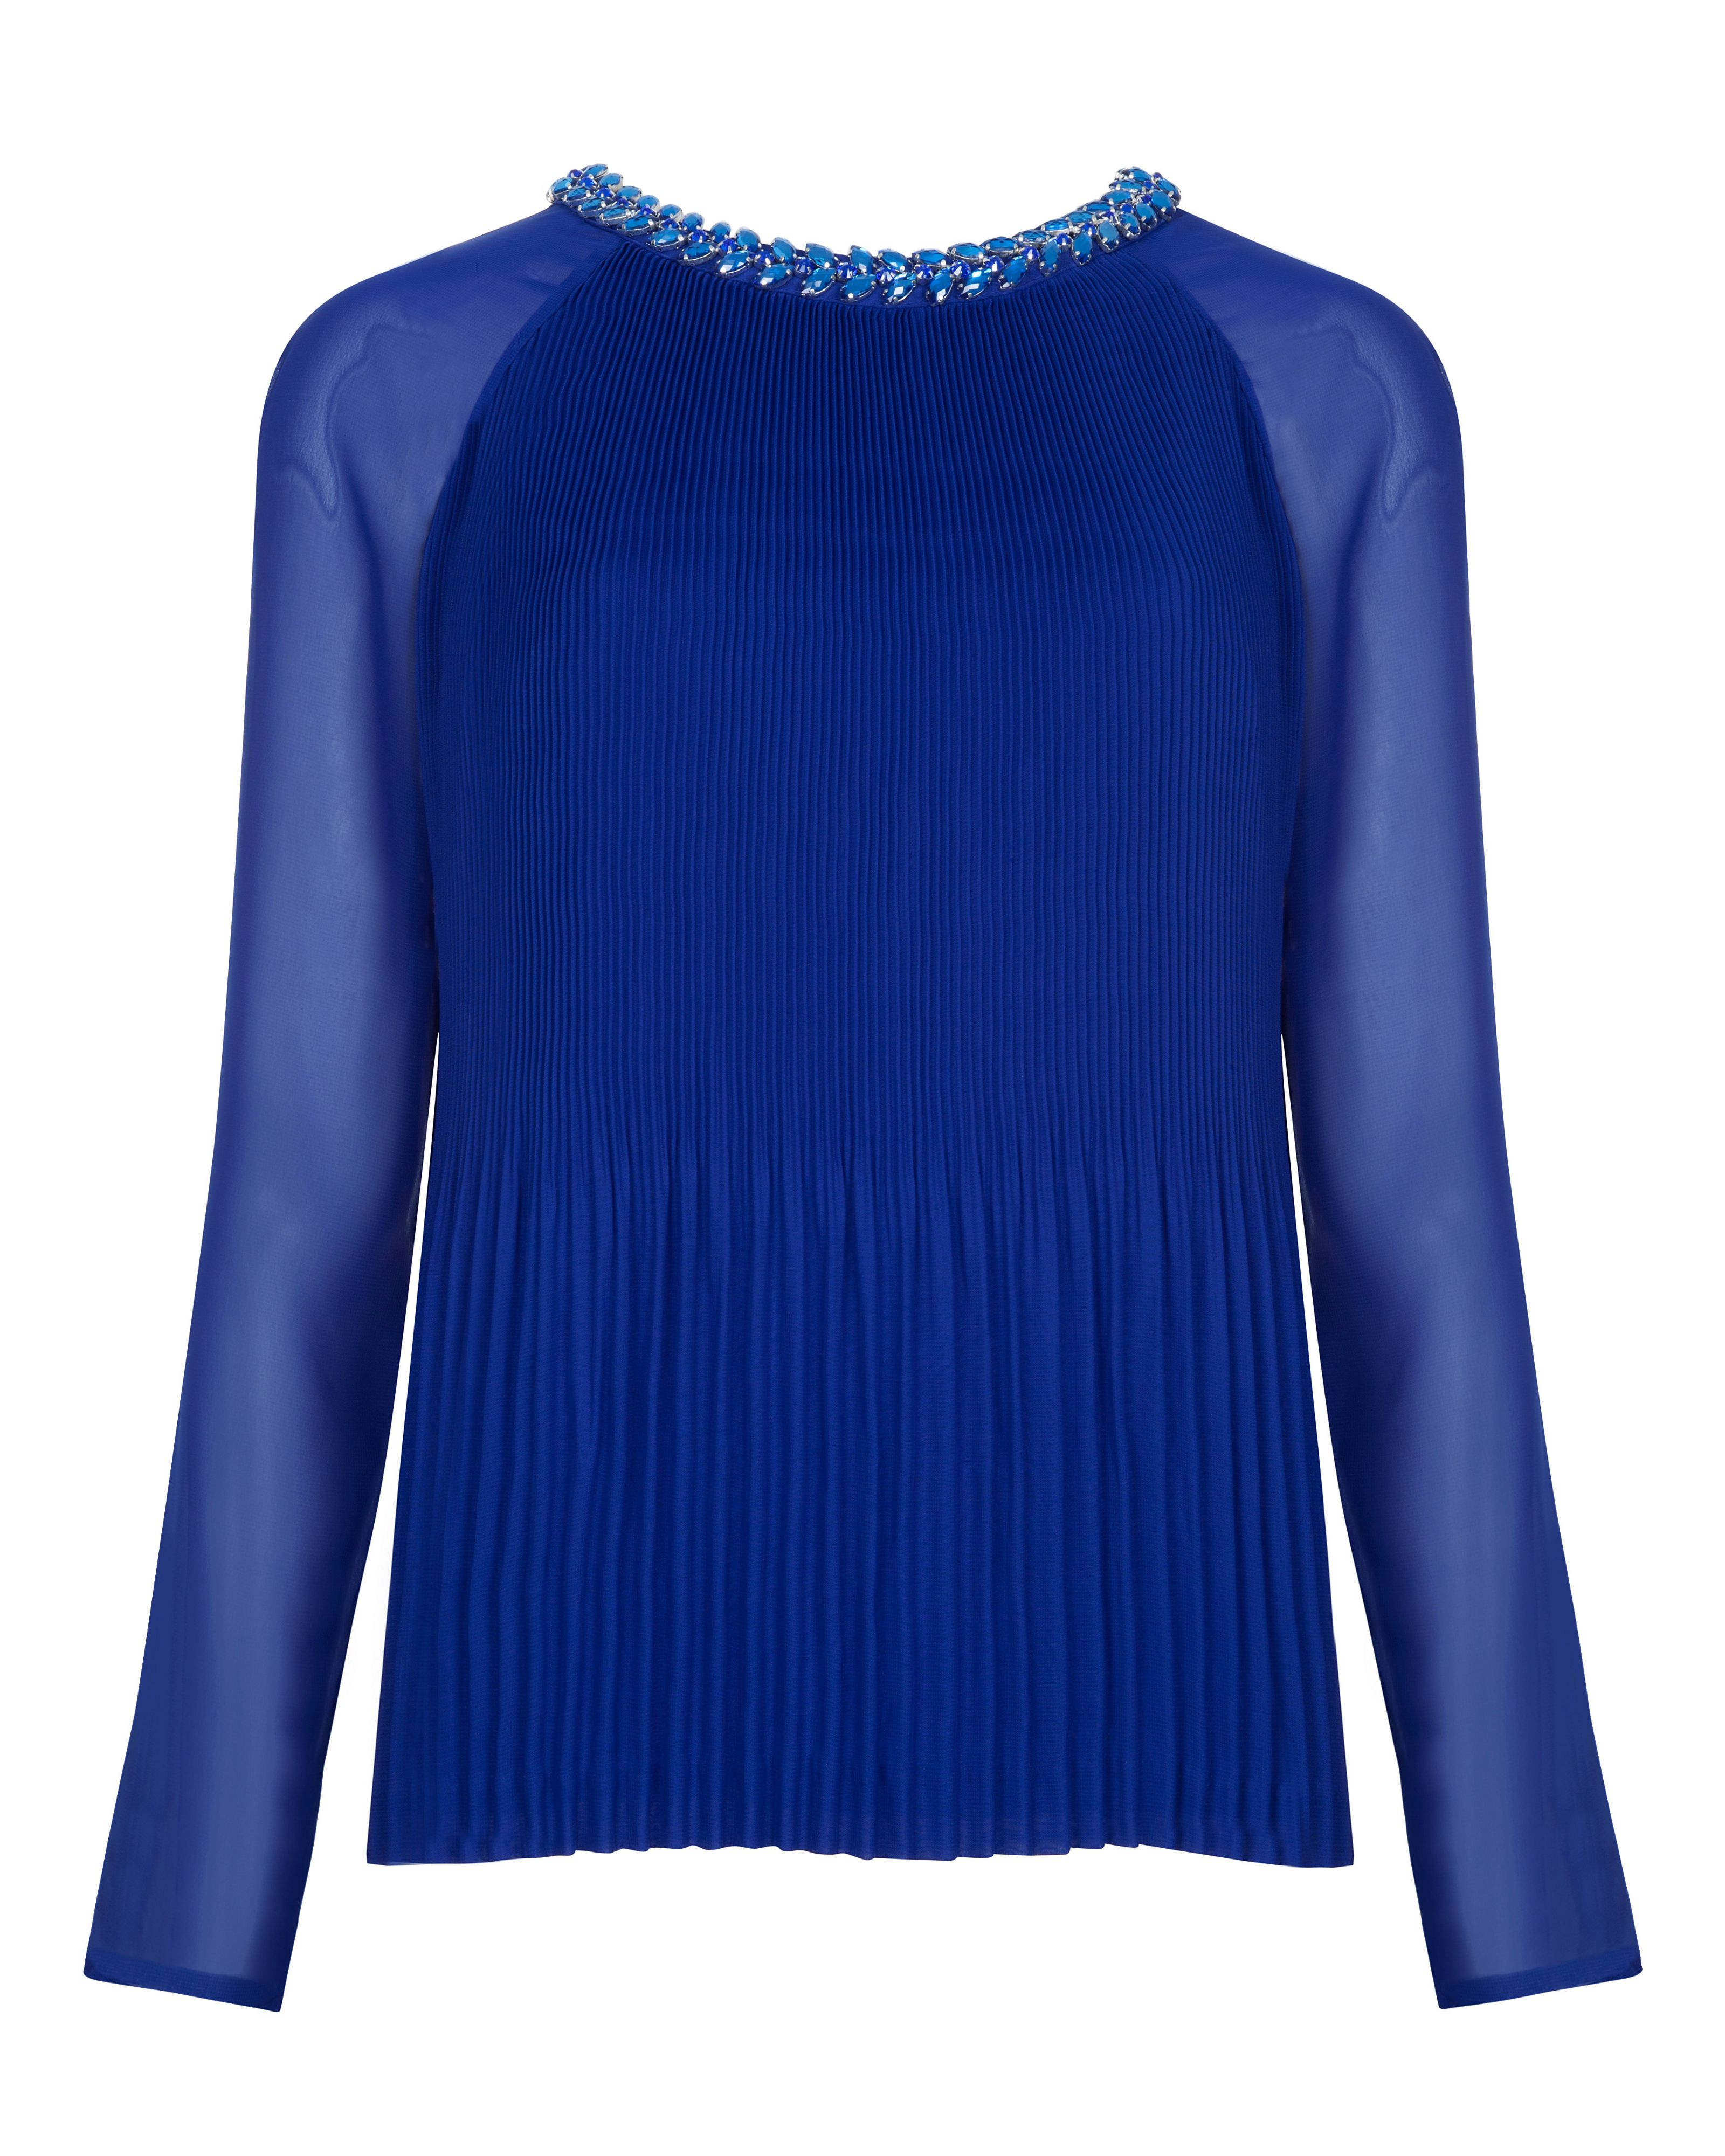 Lovina beaded neckline top